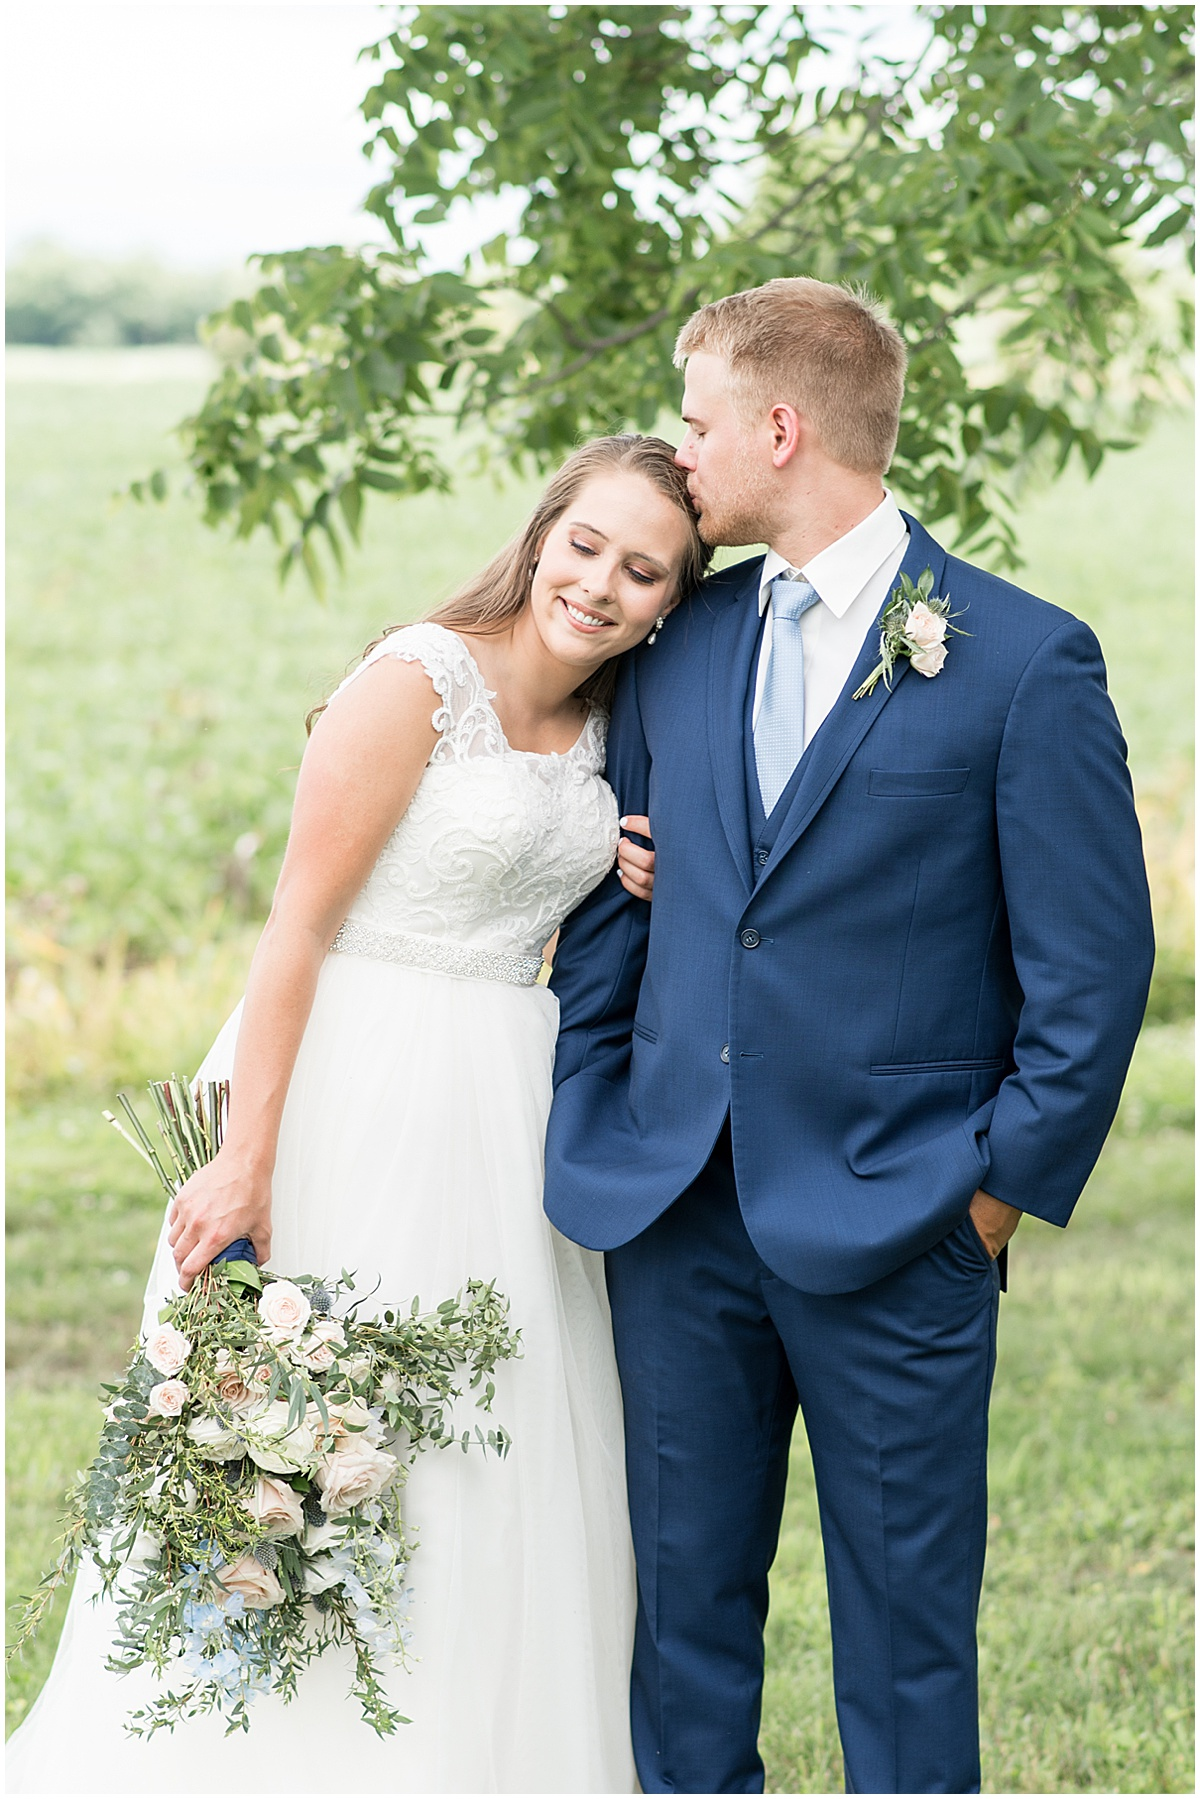 Bride and Groom at The Blessing Barn in Lafayette, Indiana